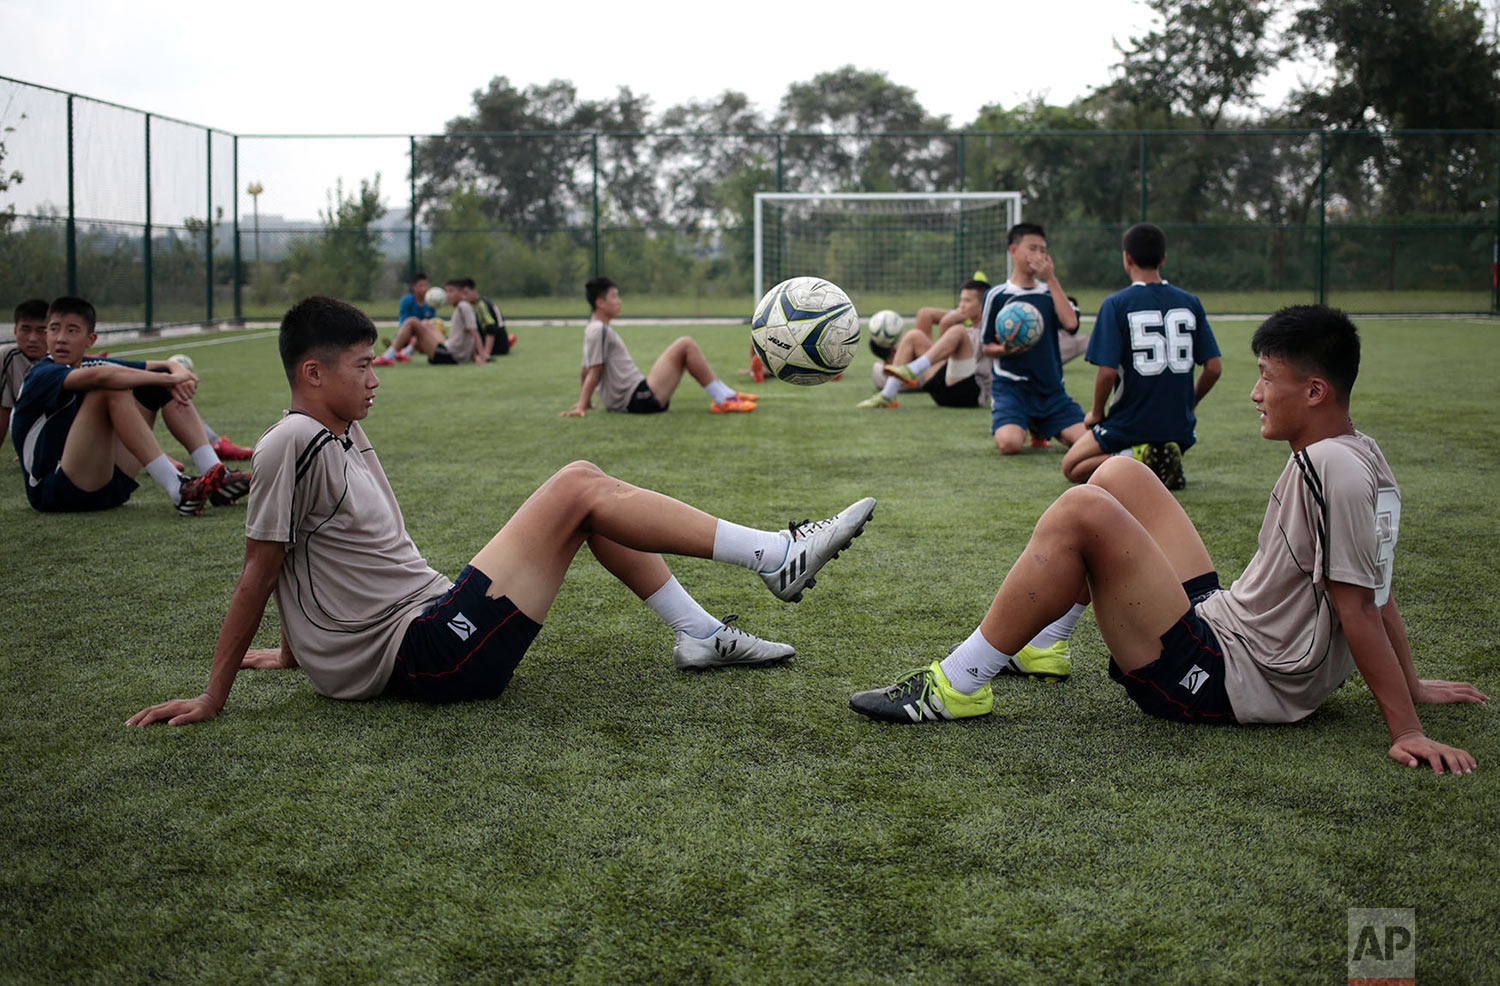 Youths play with a ball during a break at Pyongyang International Football School in Pyongyang, North Korea, on Aug. 24, 2016. North Korea has poured funds into the development and training of promising athletes over the past several years in an effort to fulfill one of leader Kim Jong Un's primary goals to become a country be reckoned with on the global sports stage. (AP Photo/Dita Alangkara)